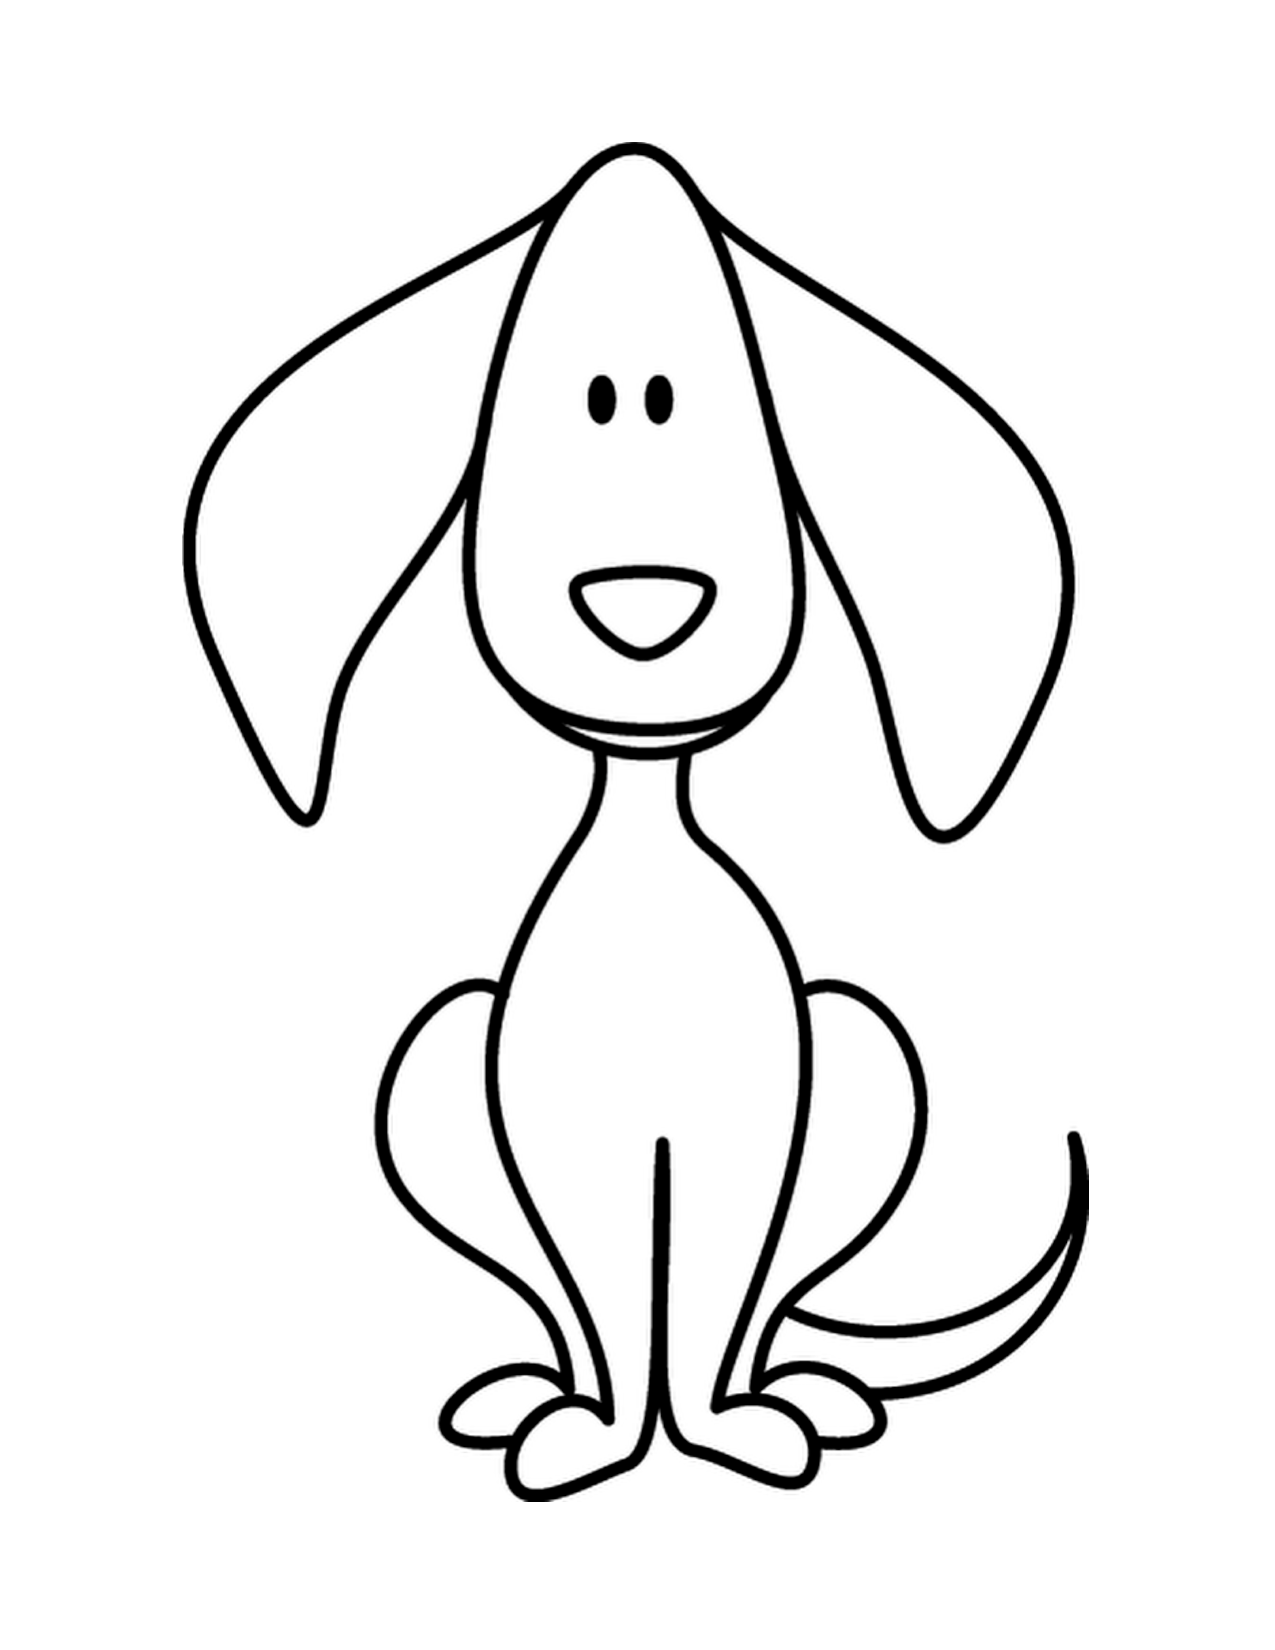 Dog Kindergarten Worksheet Guide Line Drawing